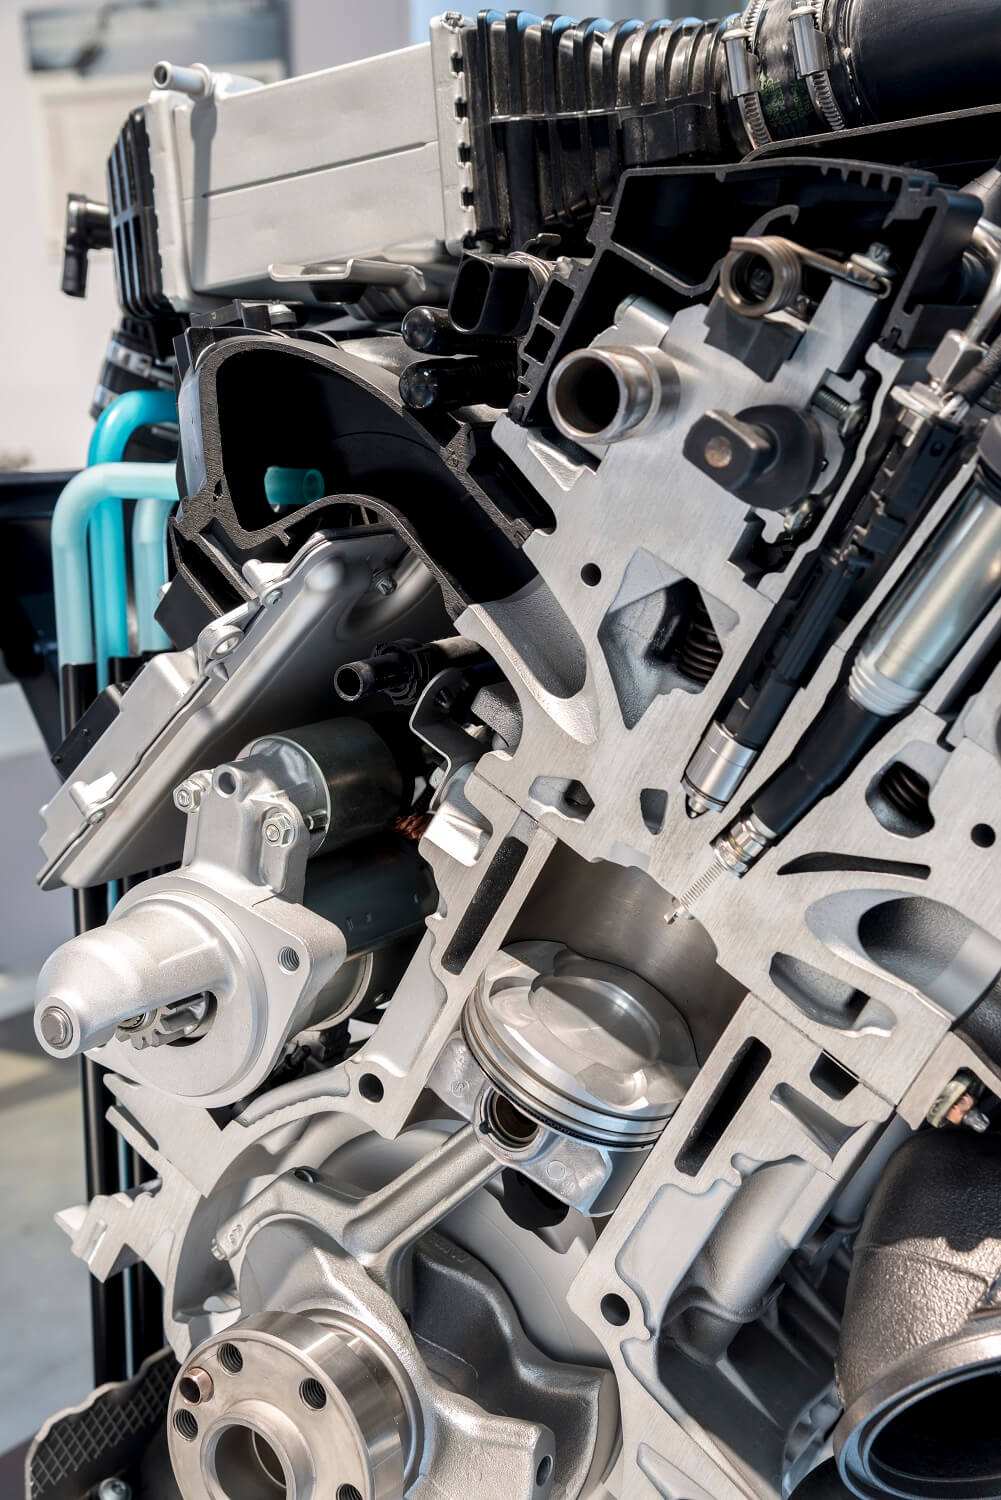 BMW direct water injection cools combustion temperatures in Turbo engine